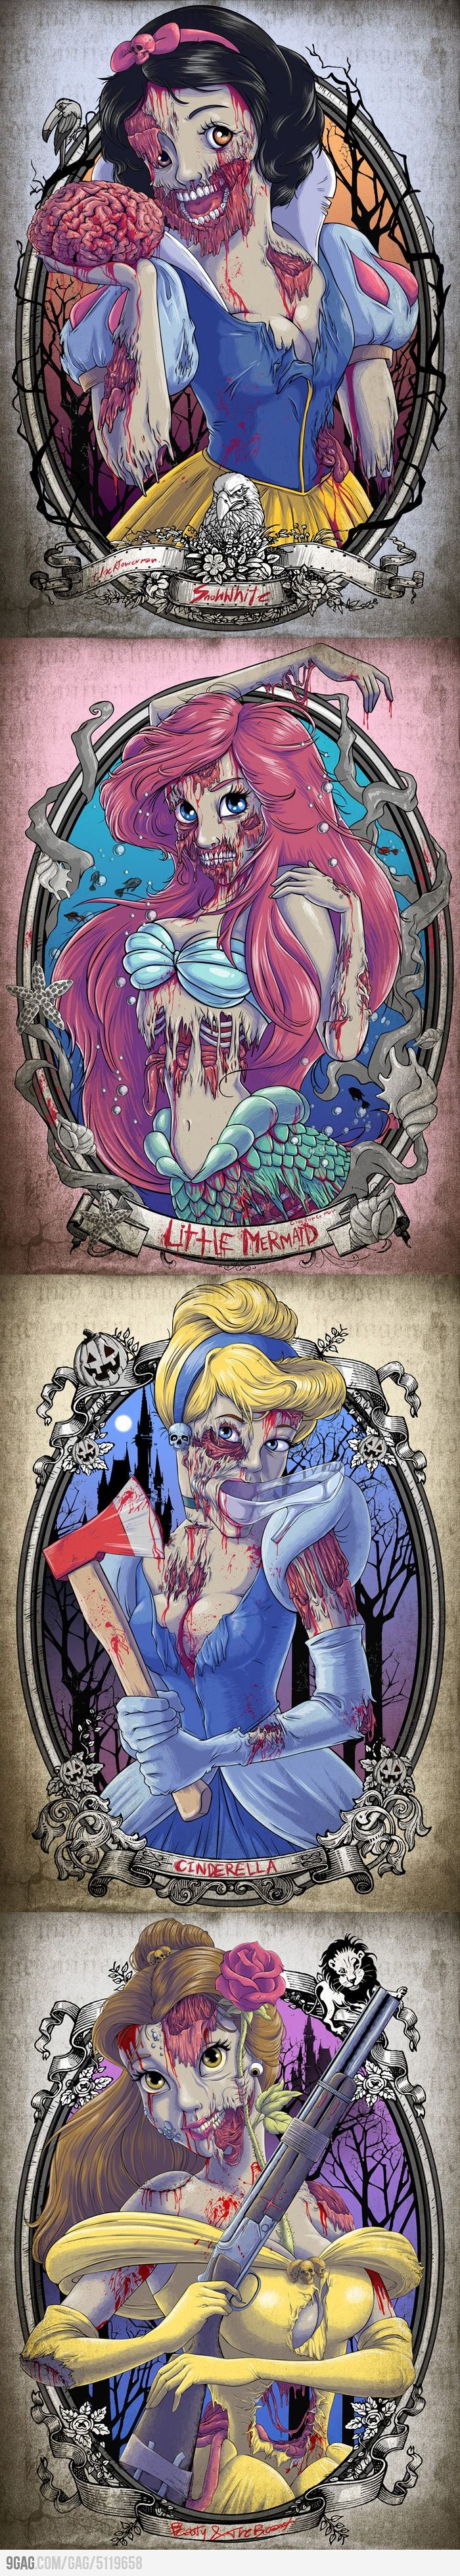 The Zombie Princesses.....this is a little creey